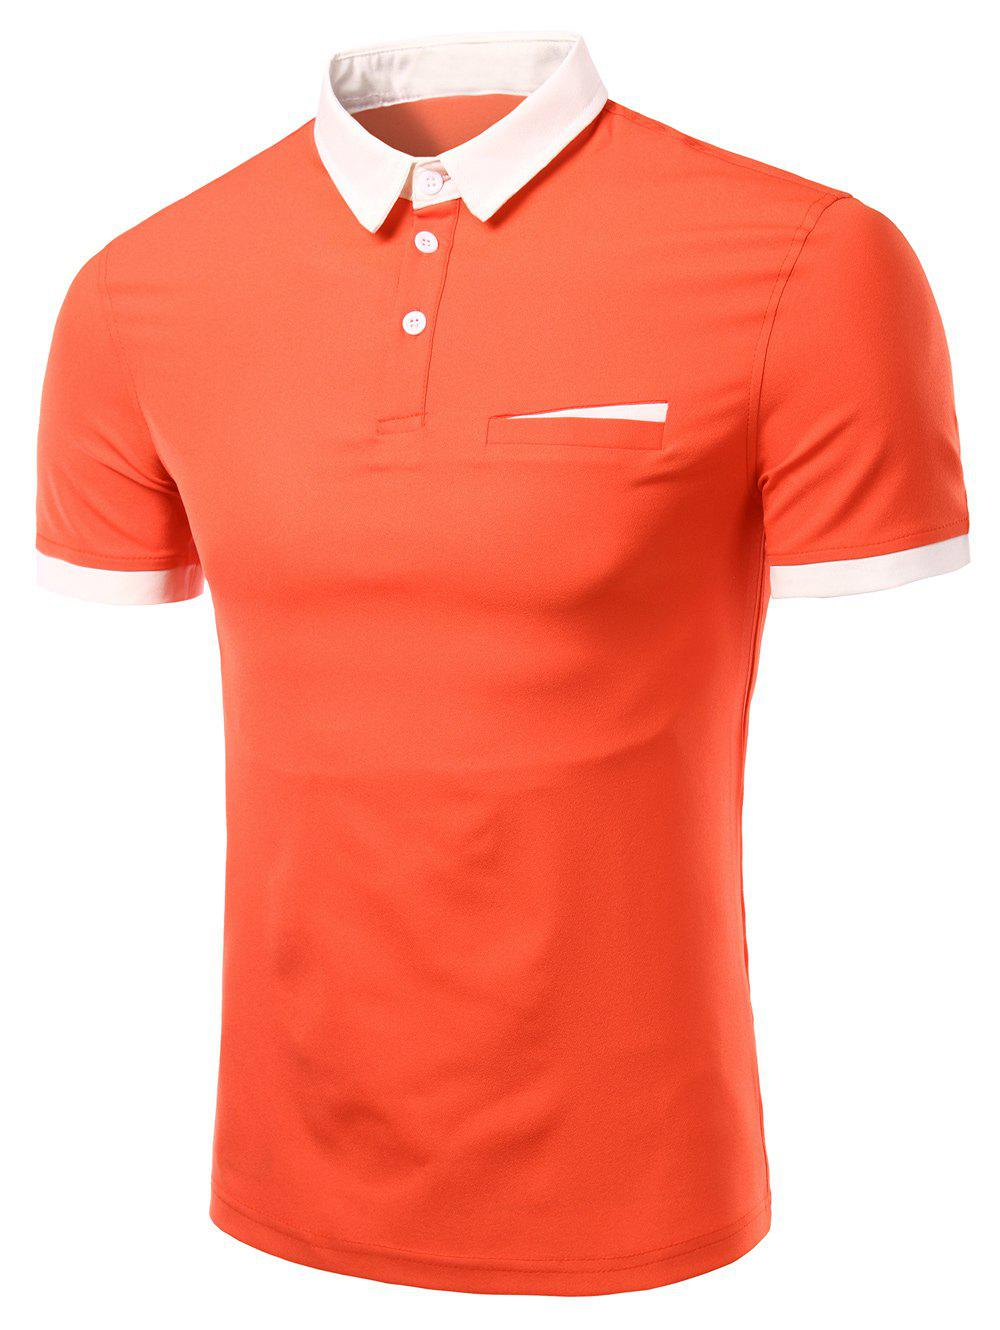 Men's Fashion Turn-down Collar Solid Color Short Sleeves Polo T-Shirt - JACINTH M